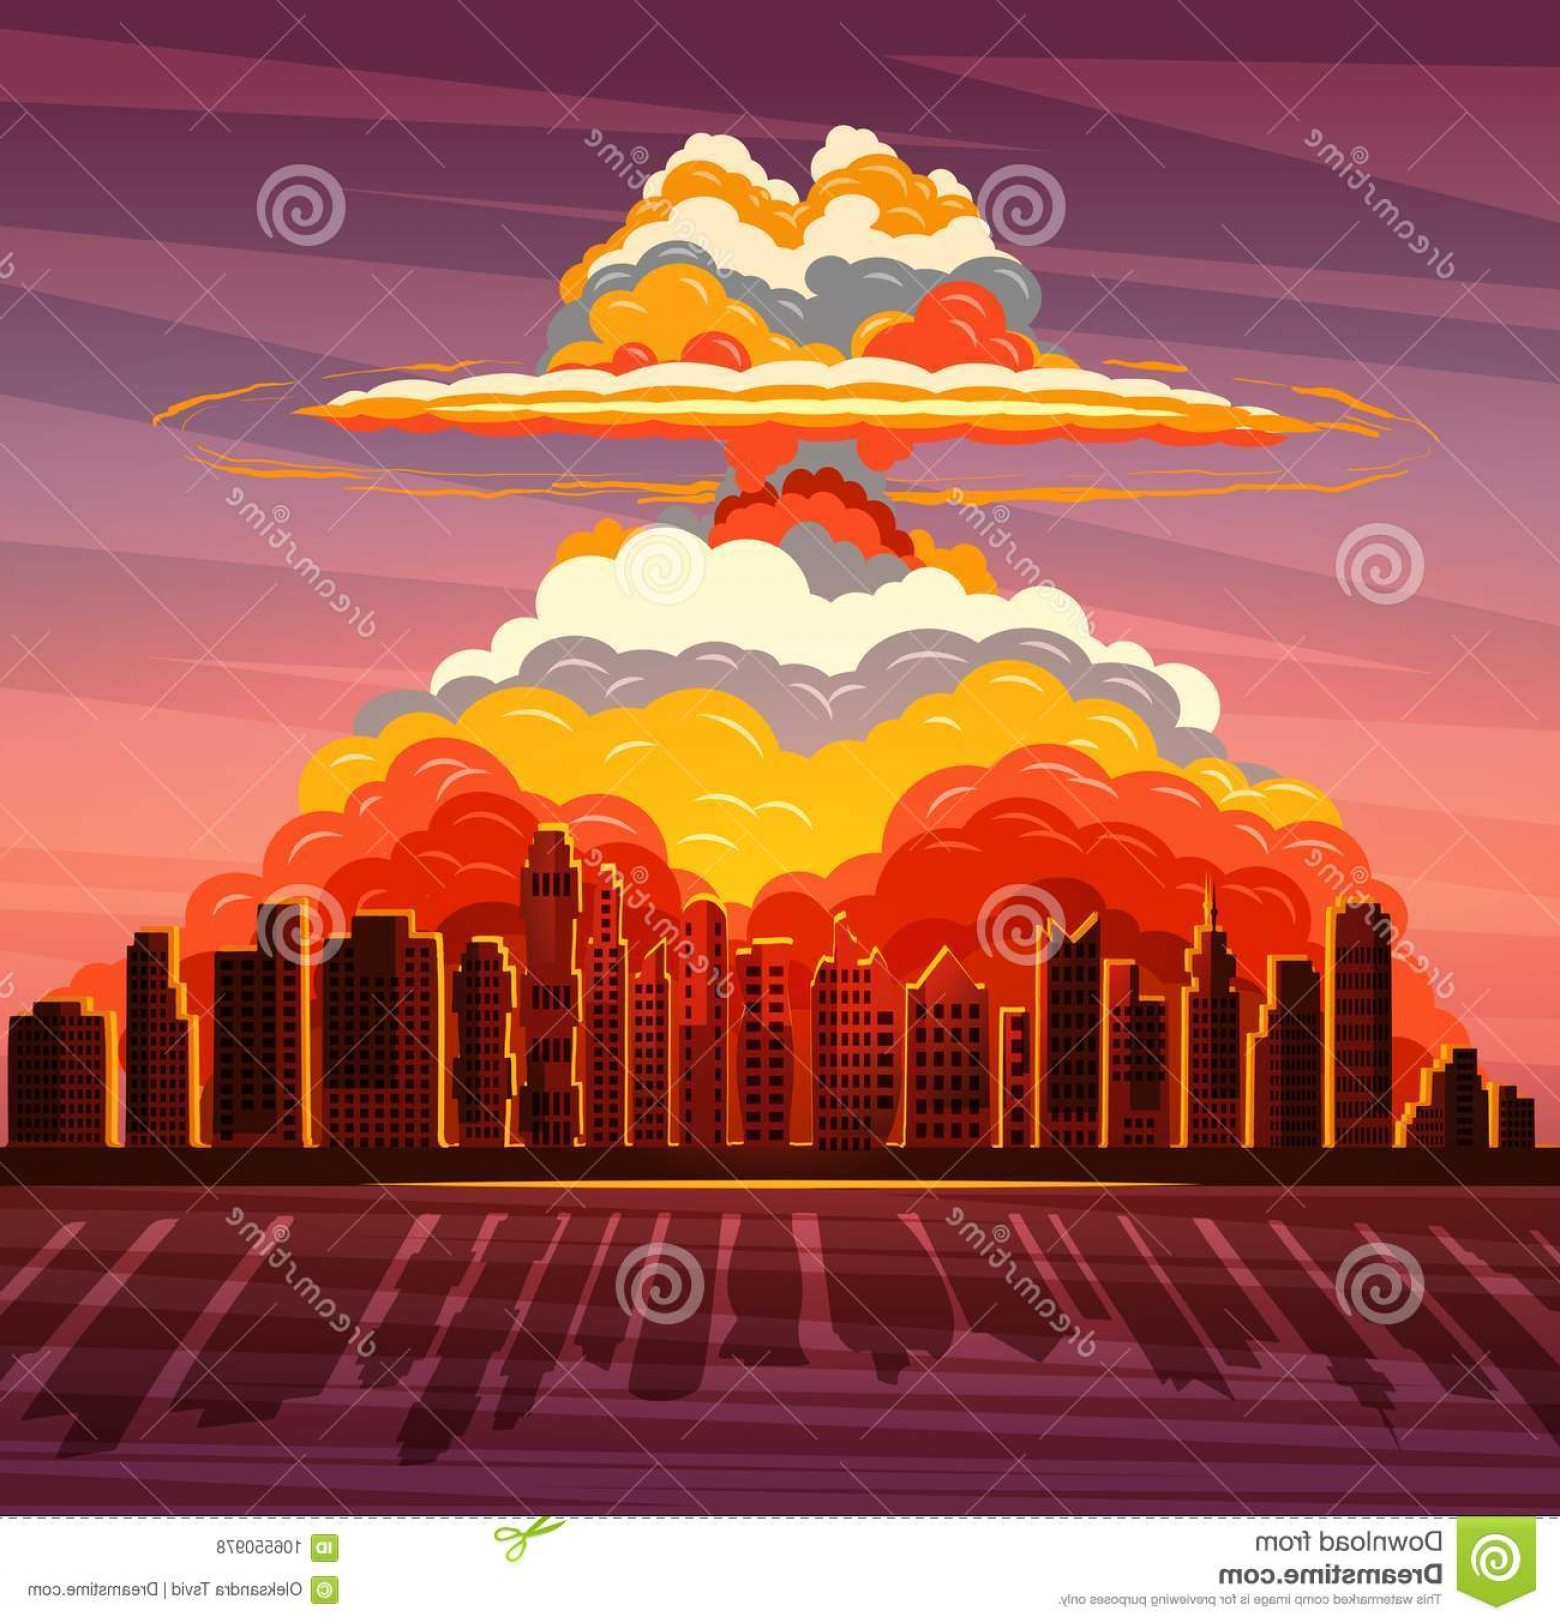 Atomic Bomb Explosion Vector: Nuclear War Atom Bomb Falling Big City Vector Illustration Nuclear Explosion Atom Bomb Falling Big City Image